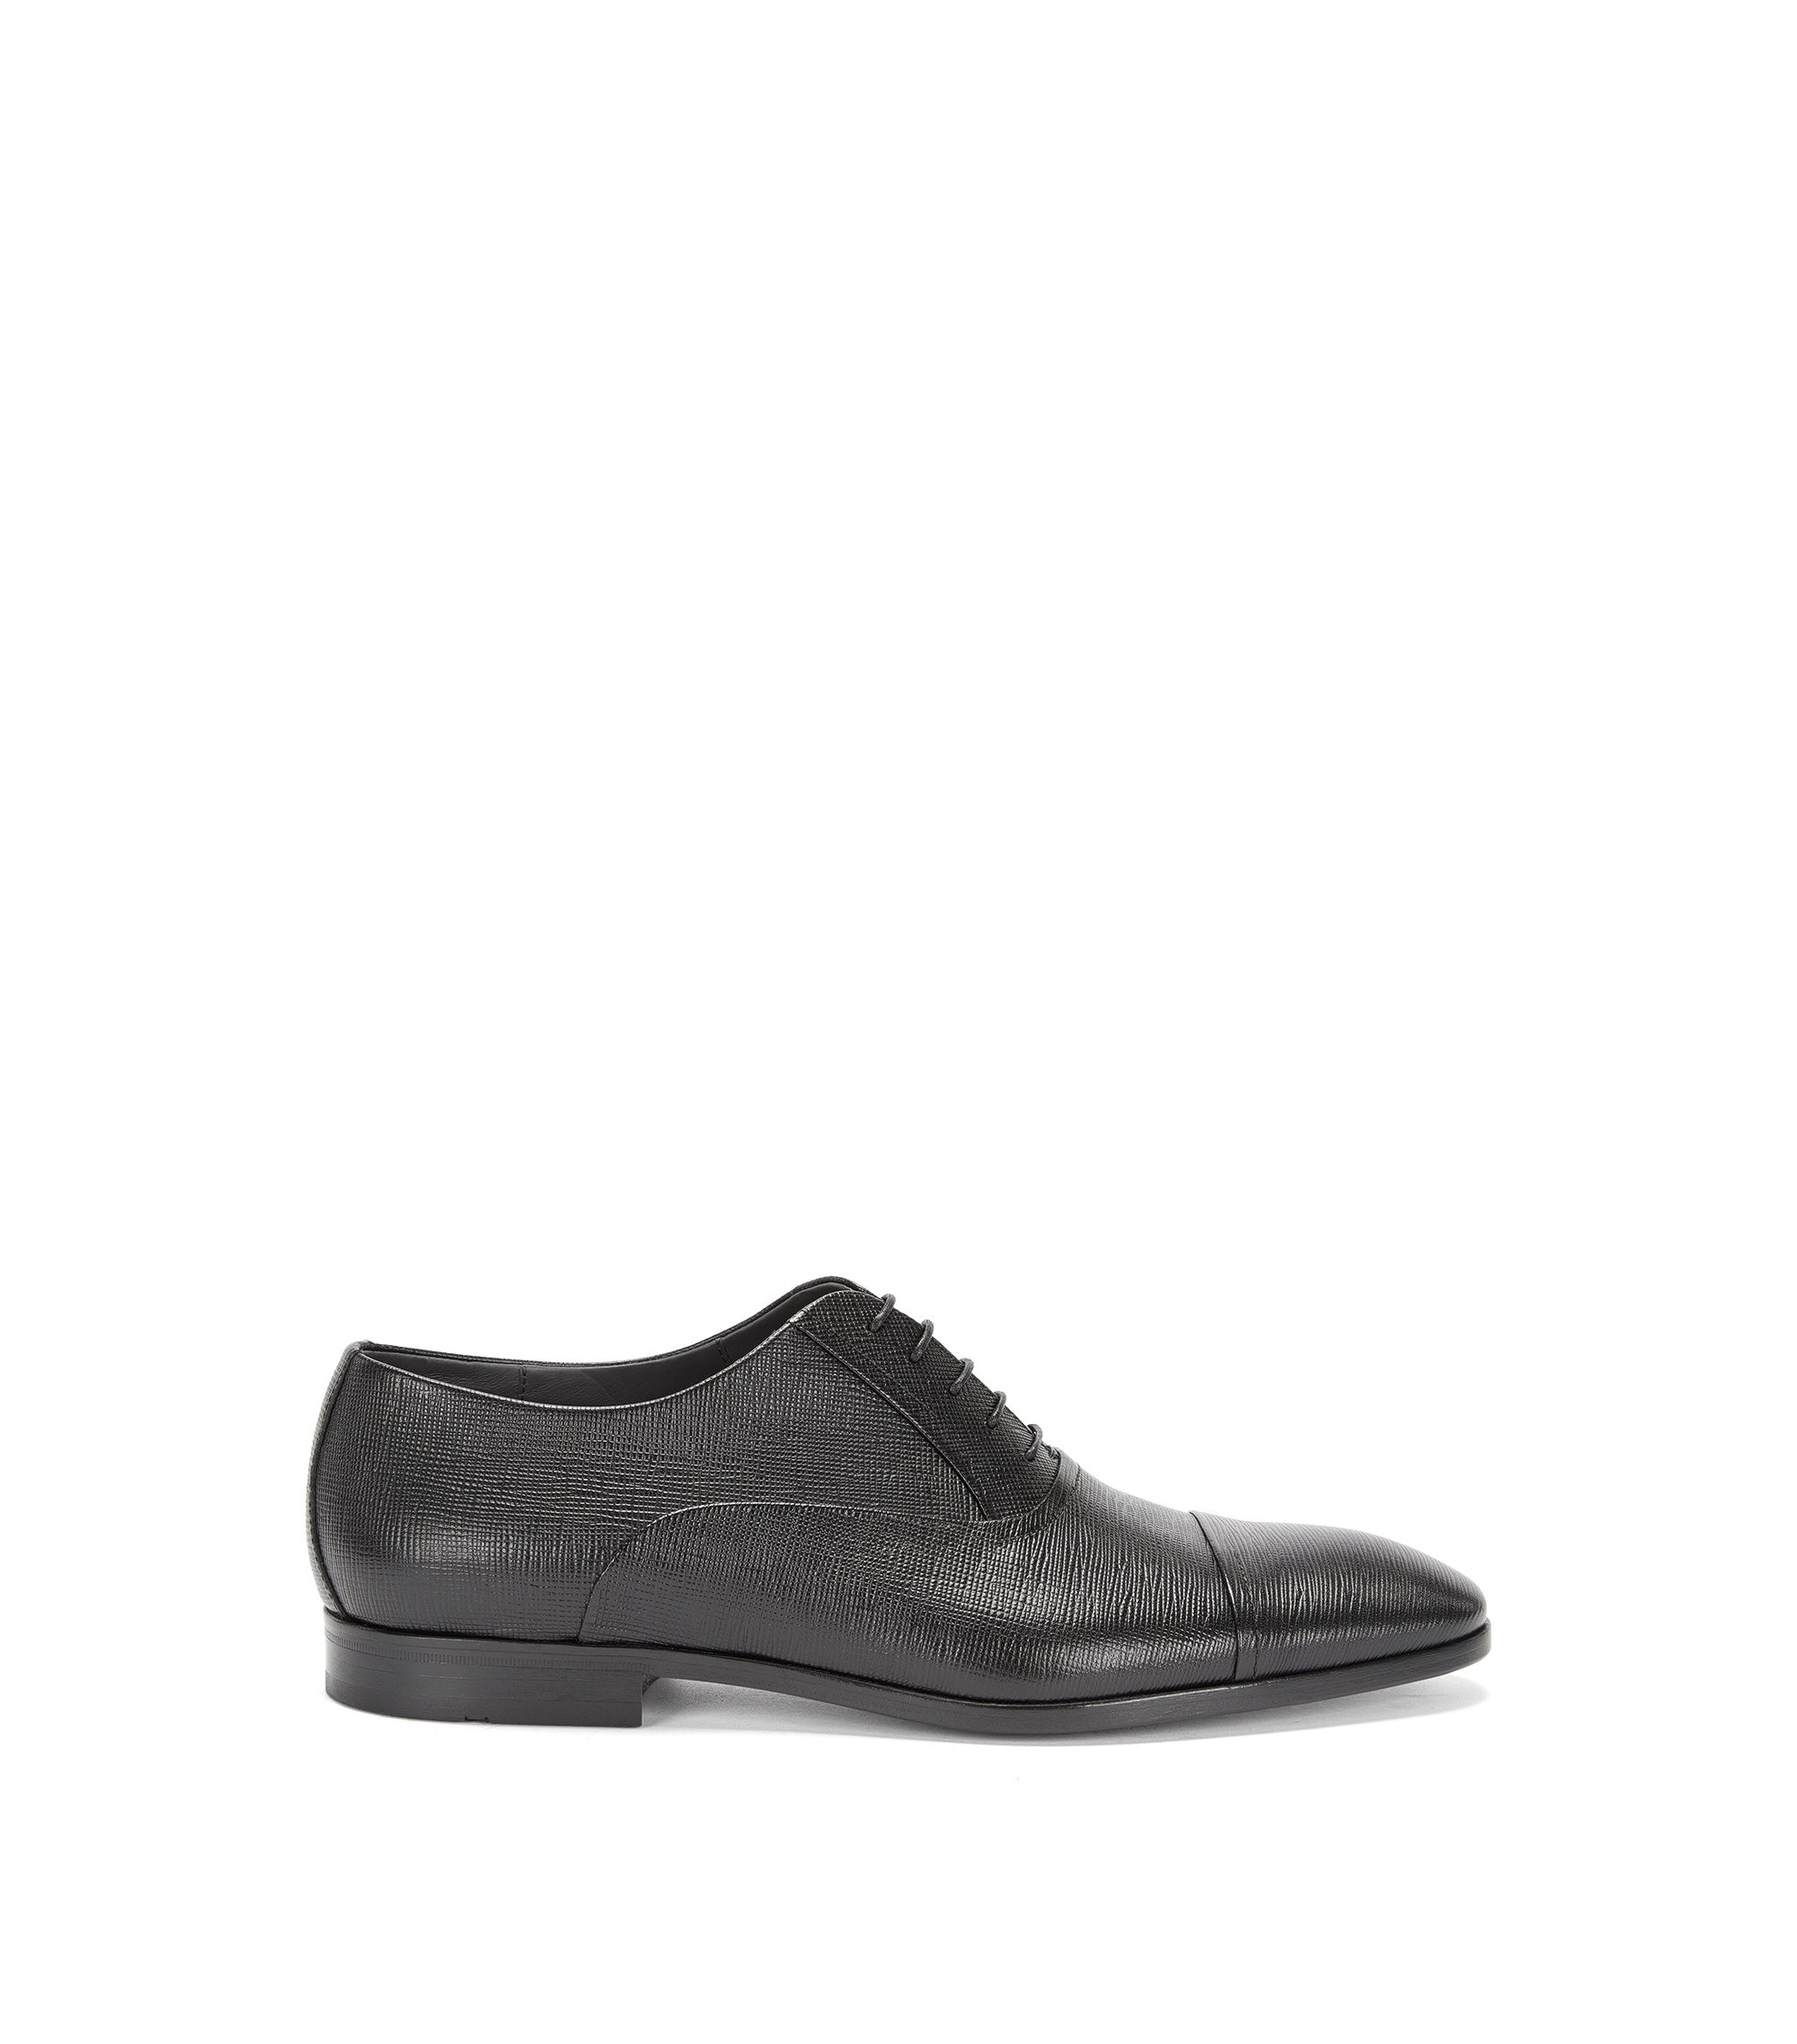 Italian Leather Oxford Dress Shoe | Eveprin, Black